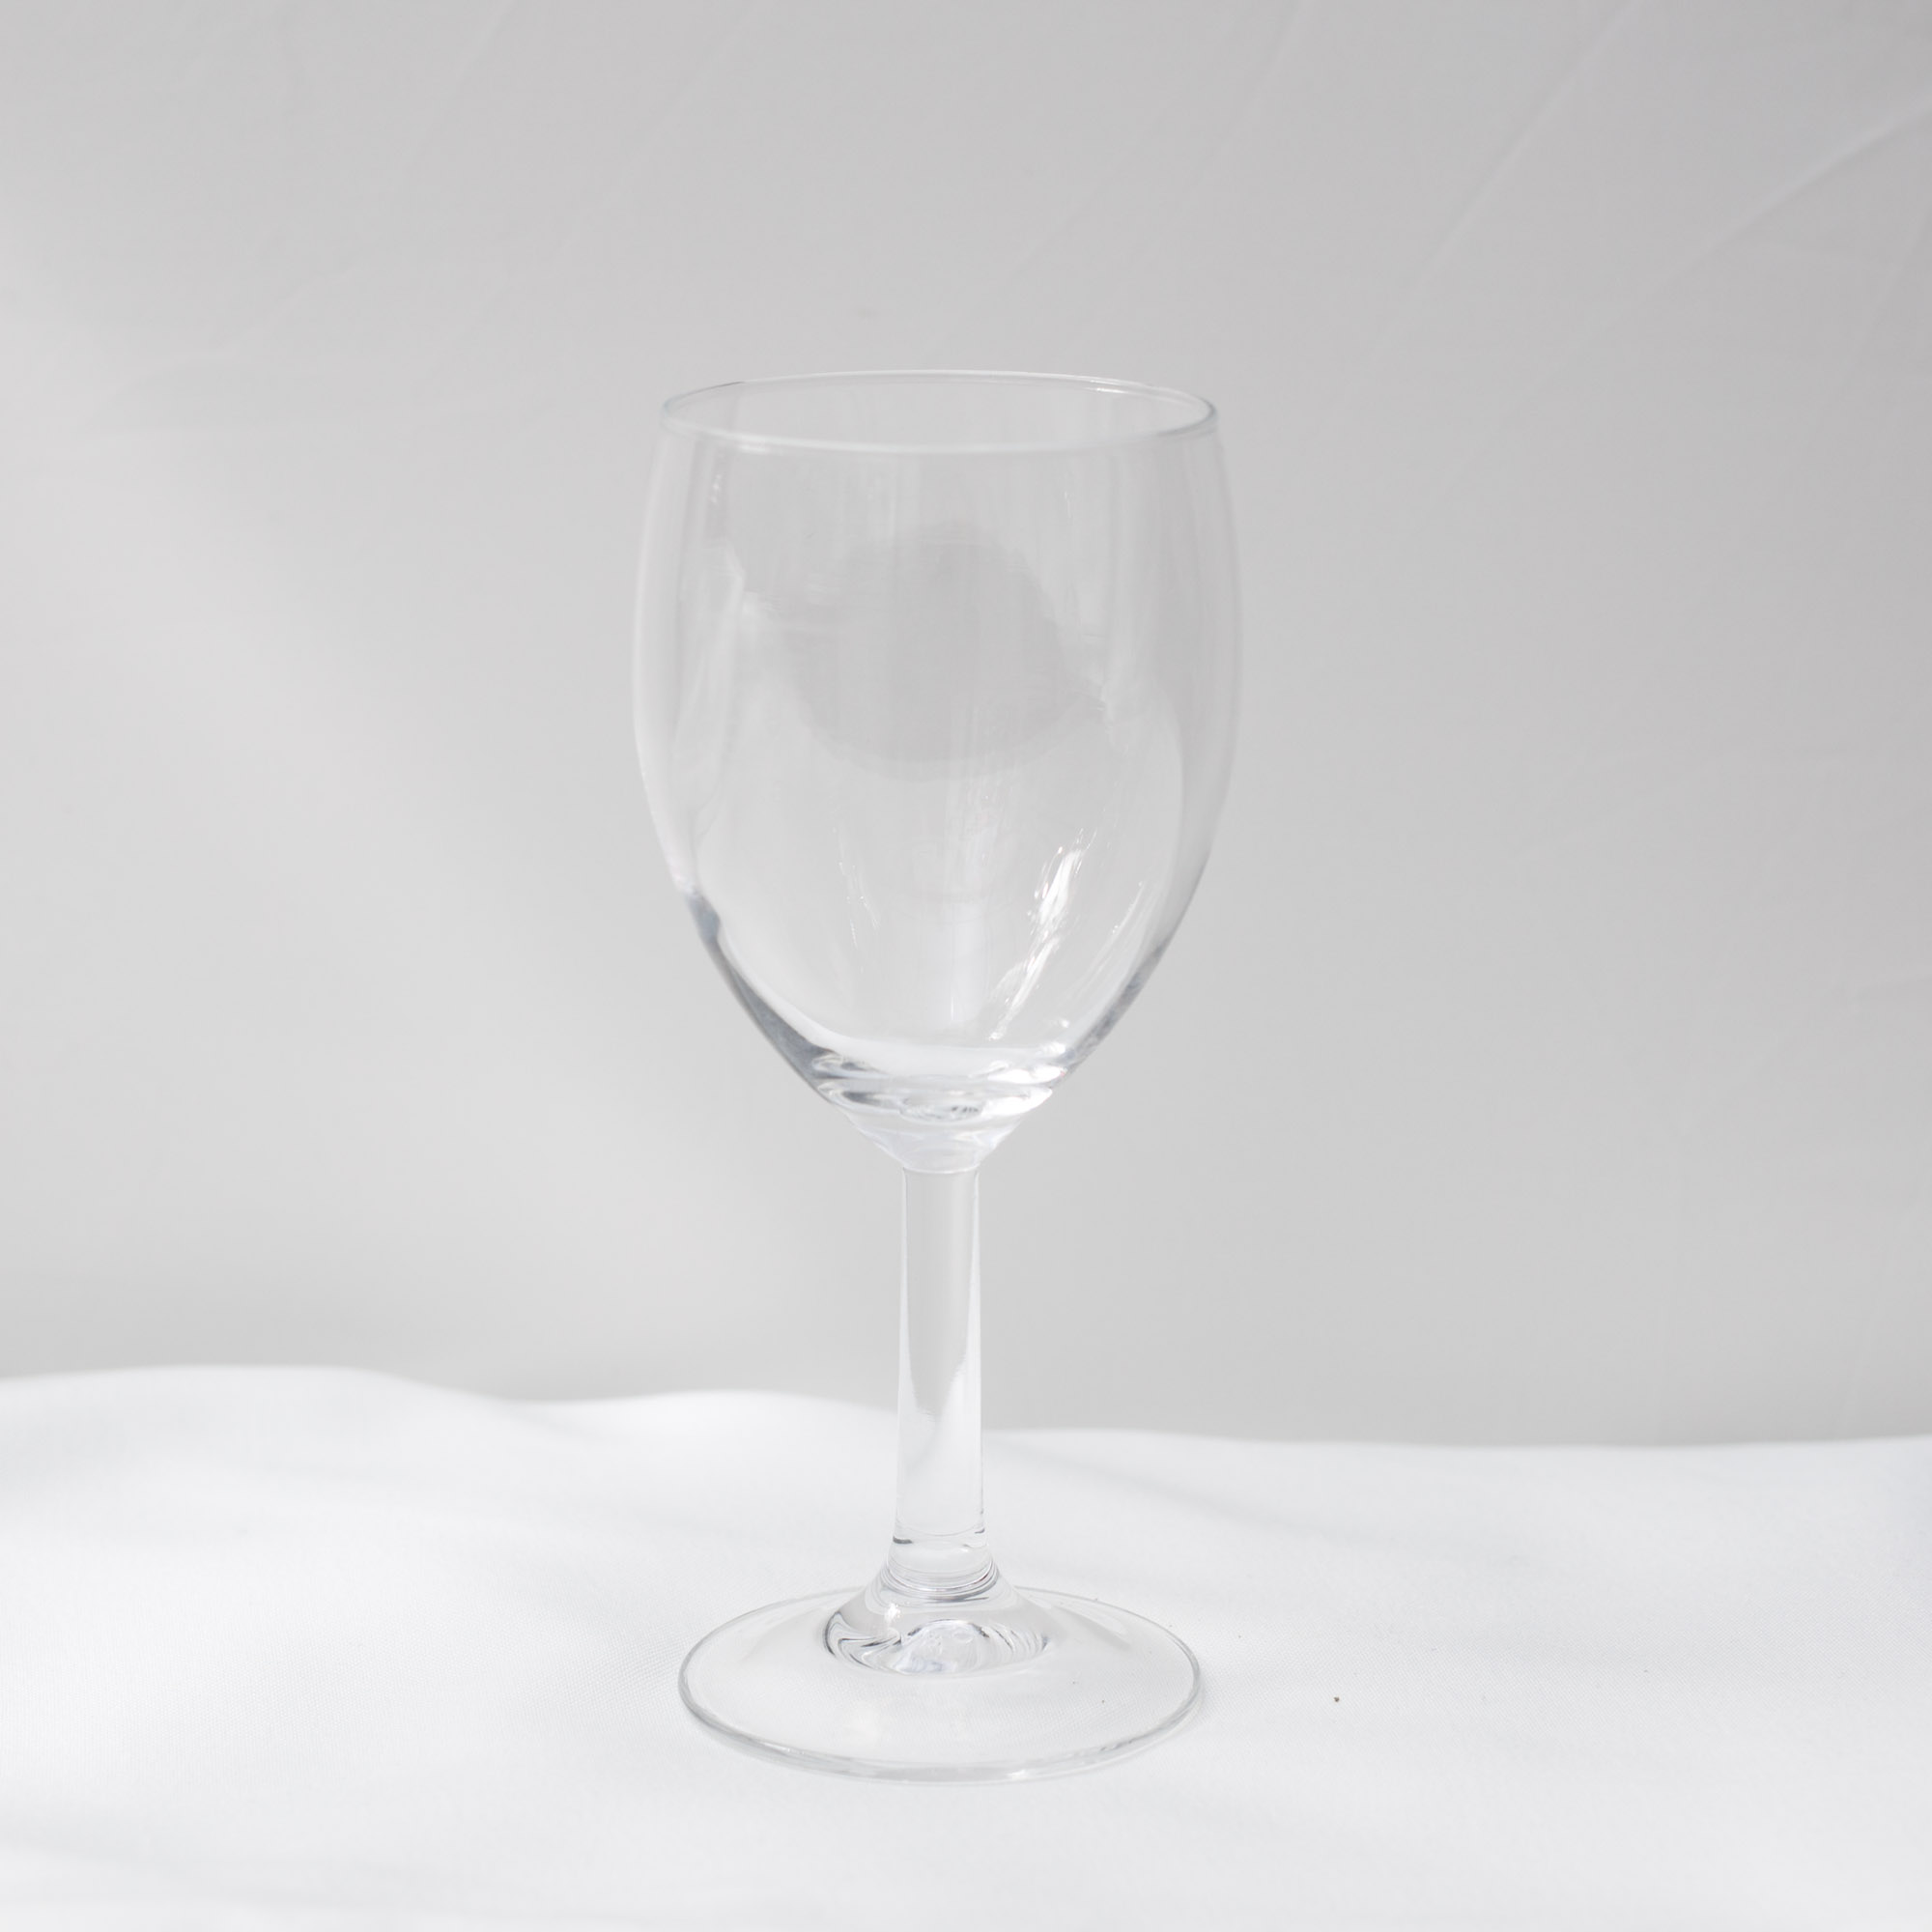 Big Red Wine Glasses Large Wine Glass 250ml 8oz Beyond Expectations